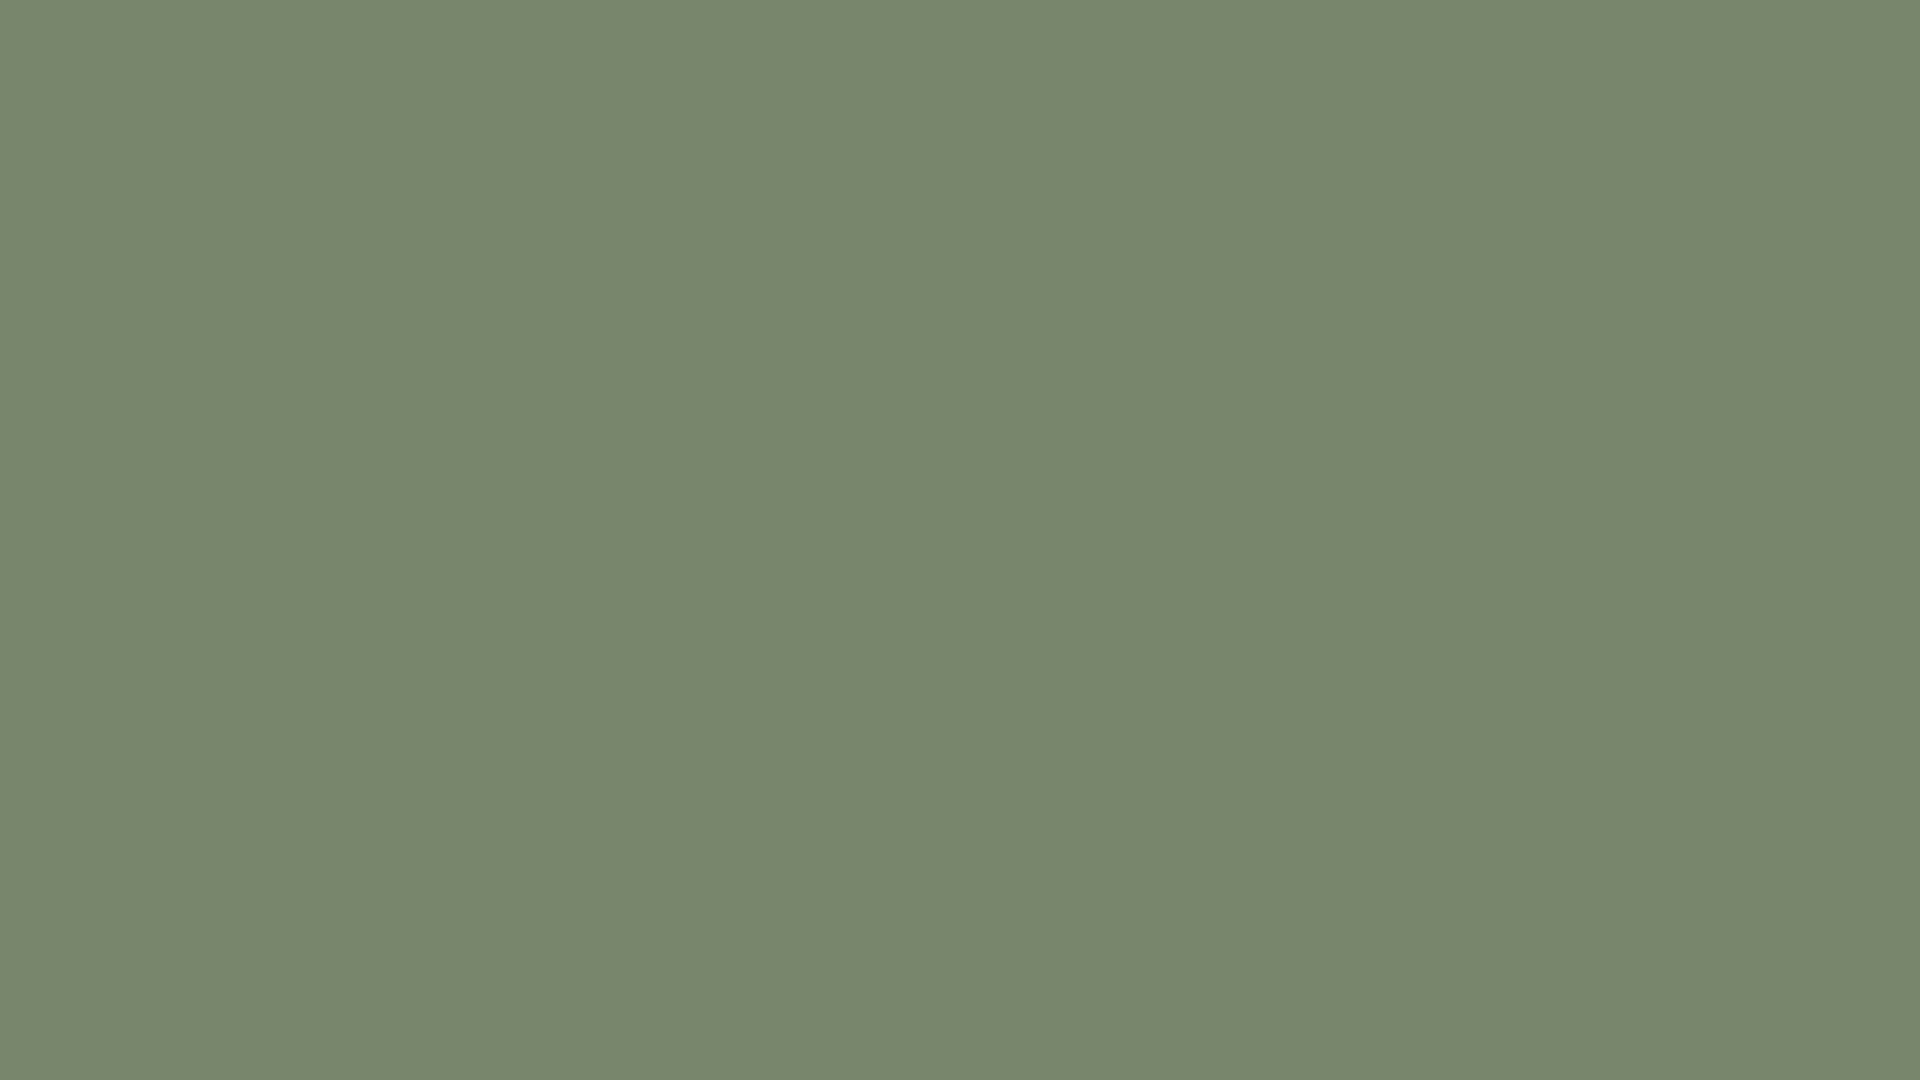 1920x1080 Camouflage Green Solid Color Background